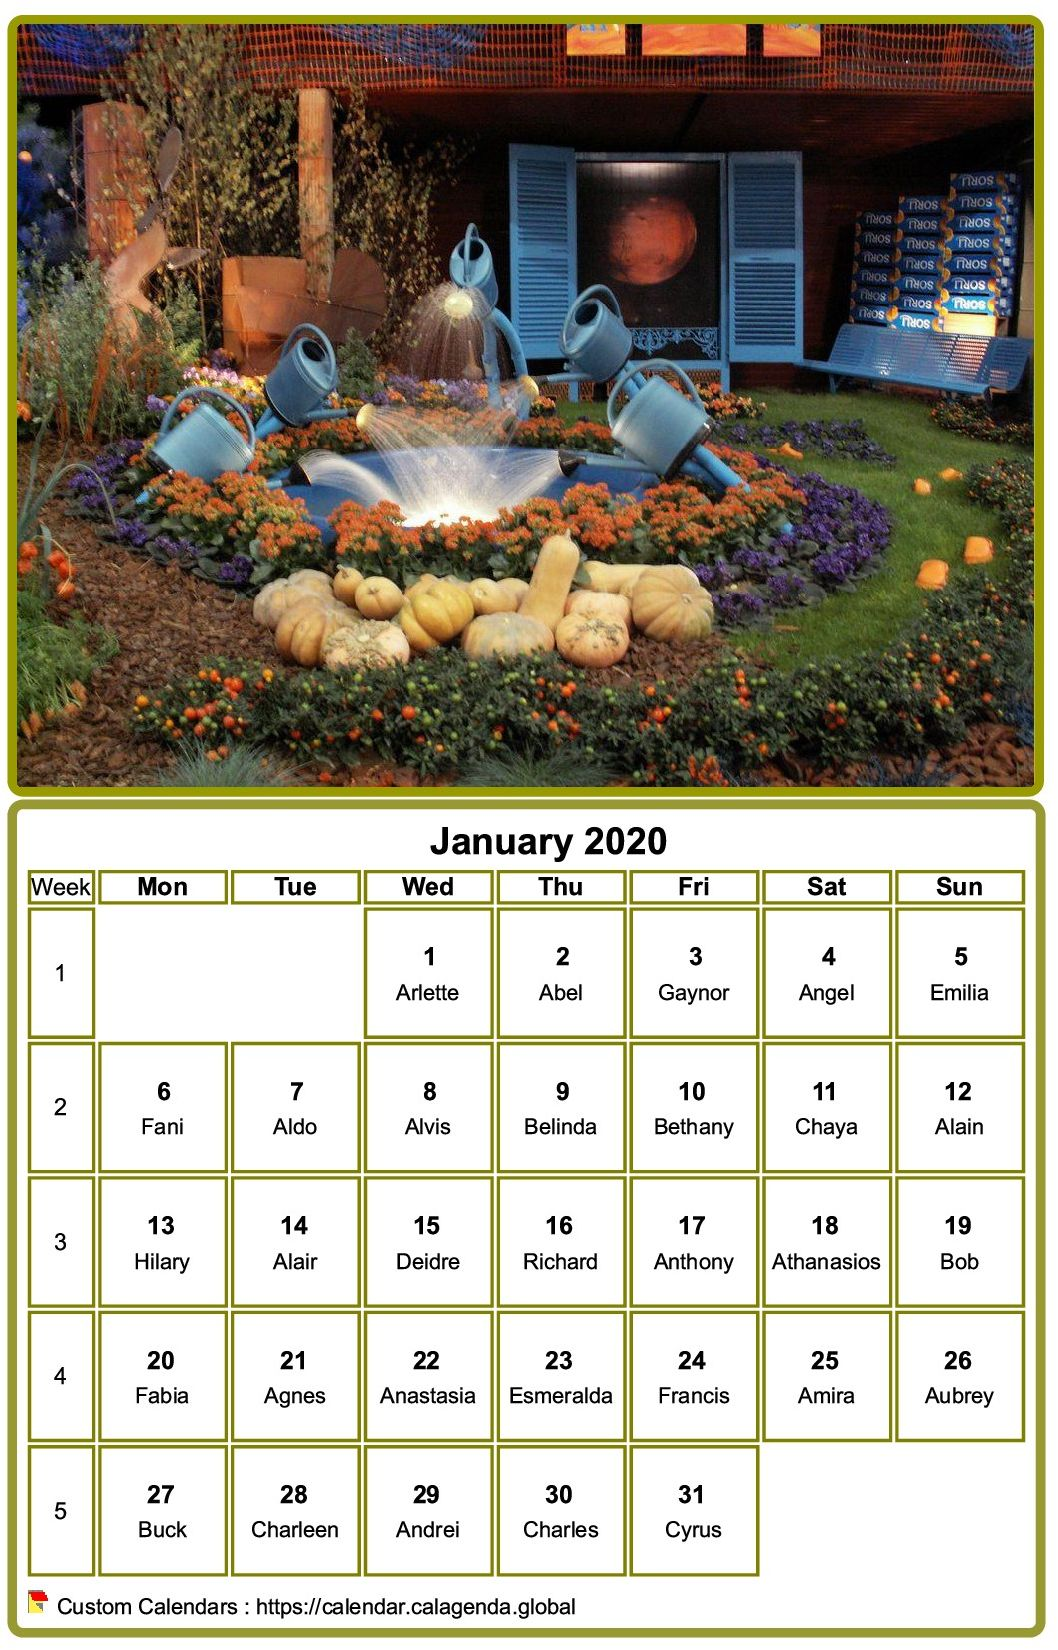 Calendar 2020 to print, monthly, with photo at the top